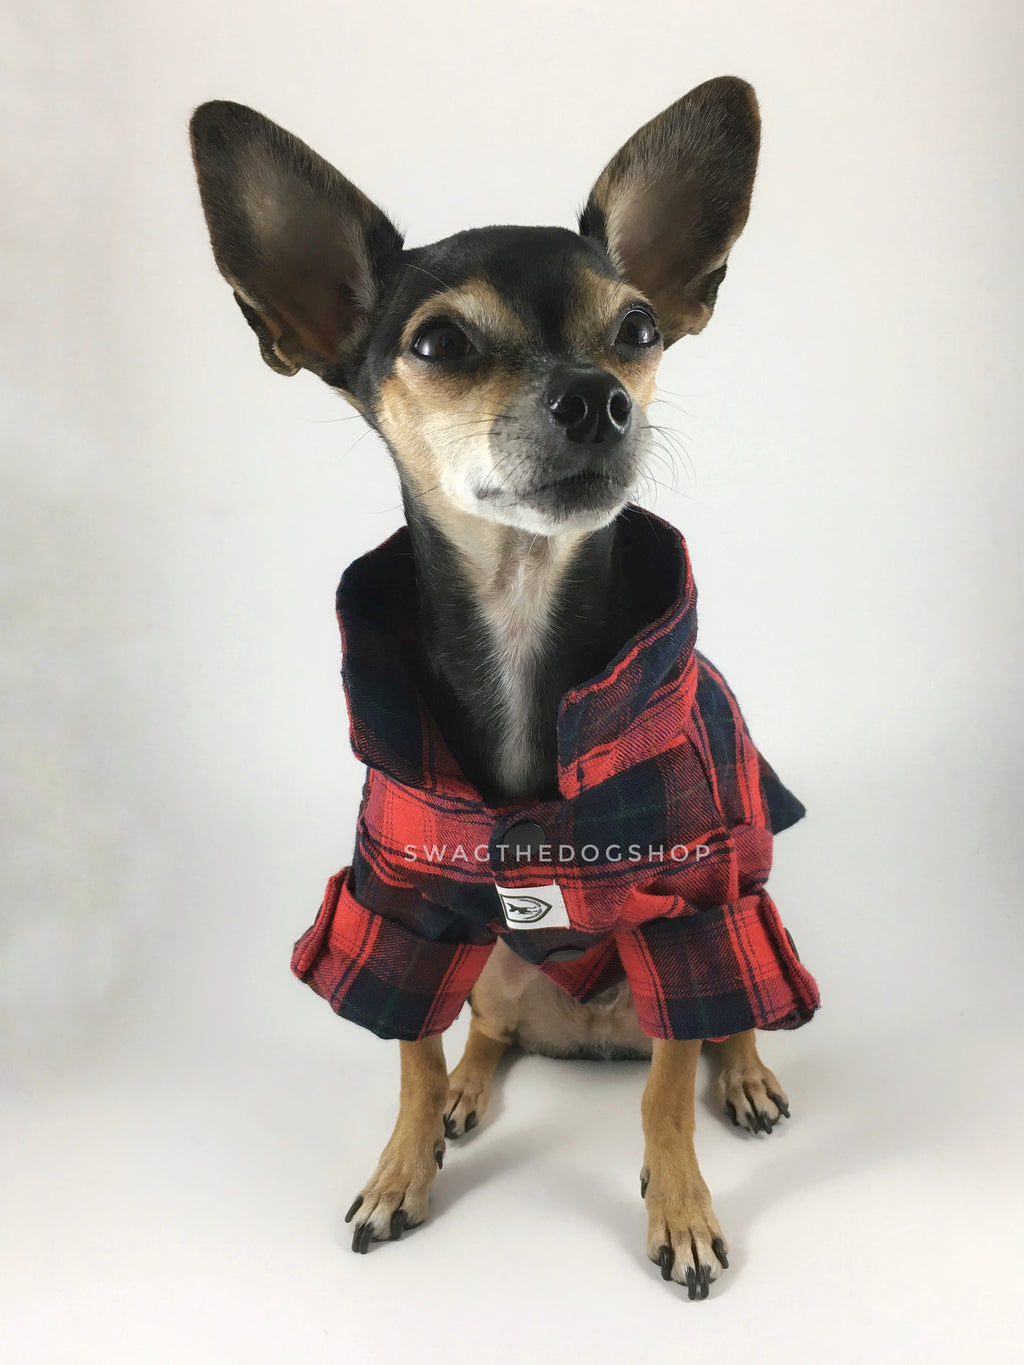 True North Red Plaid Shirt - Full Front View of Cute Chihuahua Dog Wearing Shirt with Sleeves Rolled Up. Red Plaid Shirt